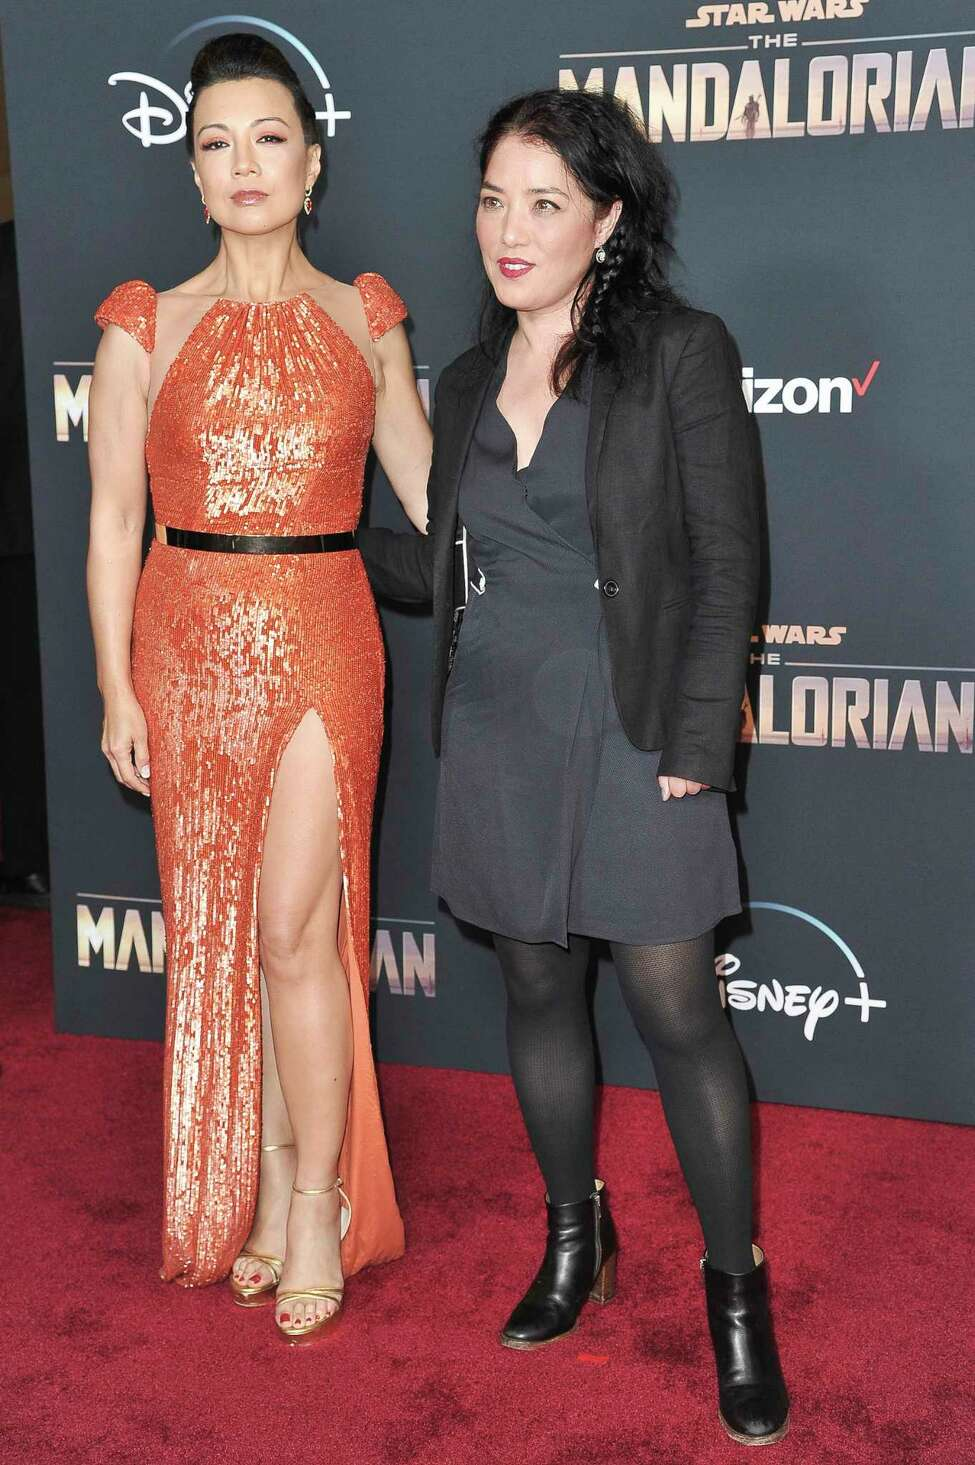 FILE - This Nov. 13, 2019 file photo shows actress Ming-Na Wen, left, and director Deborah Chow at the premiere of